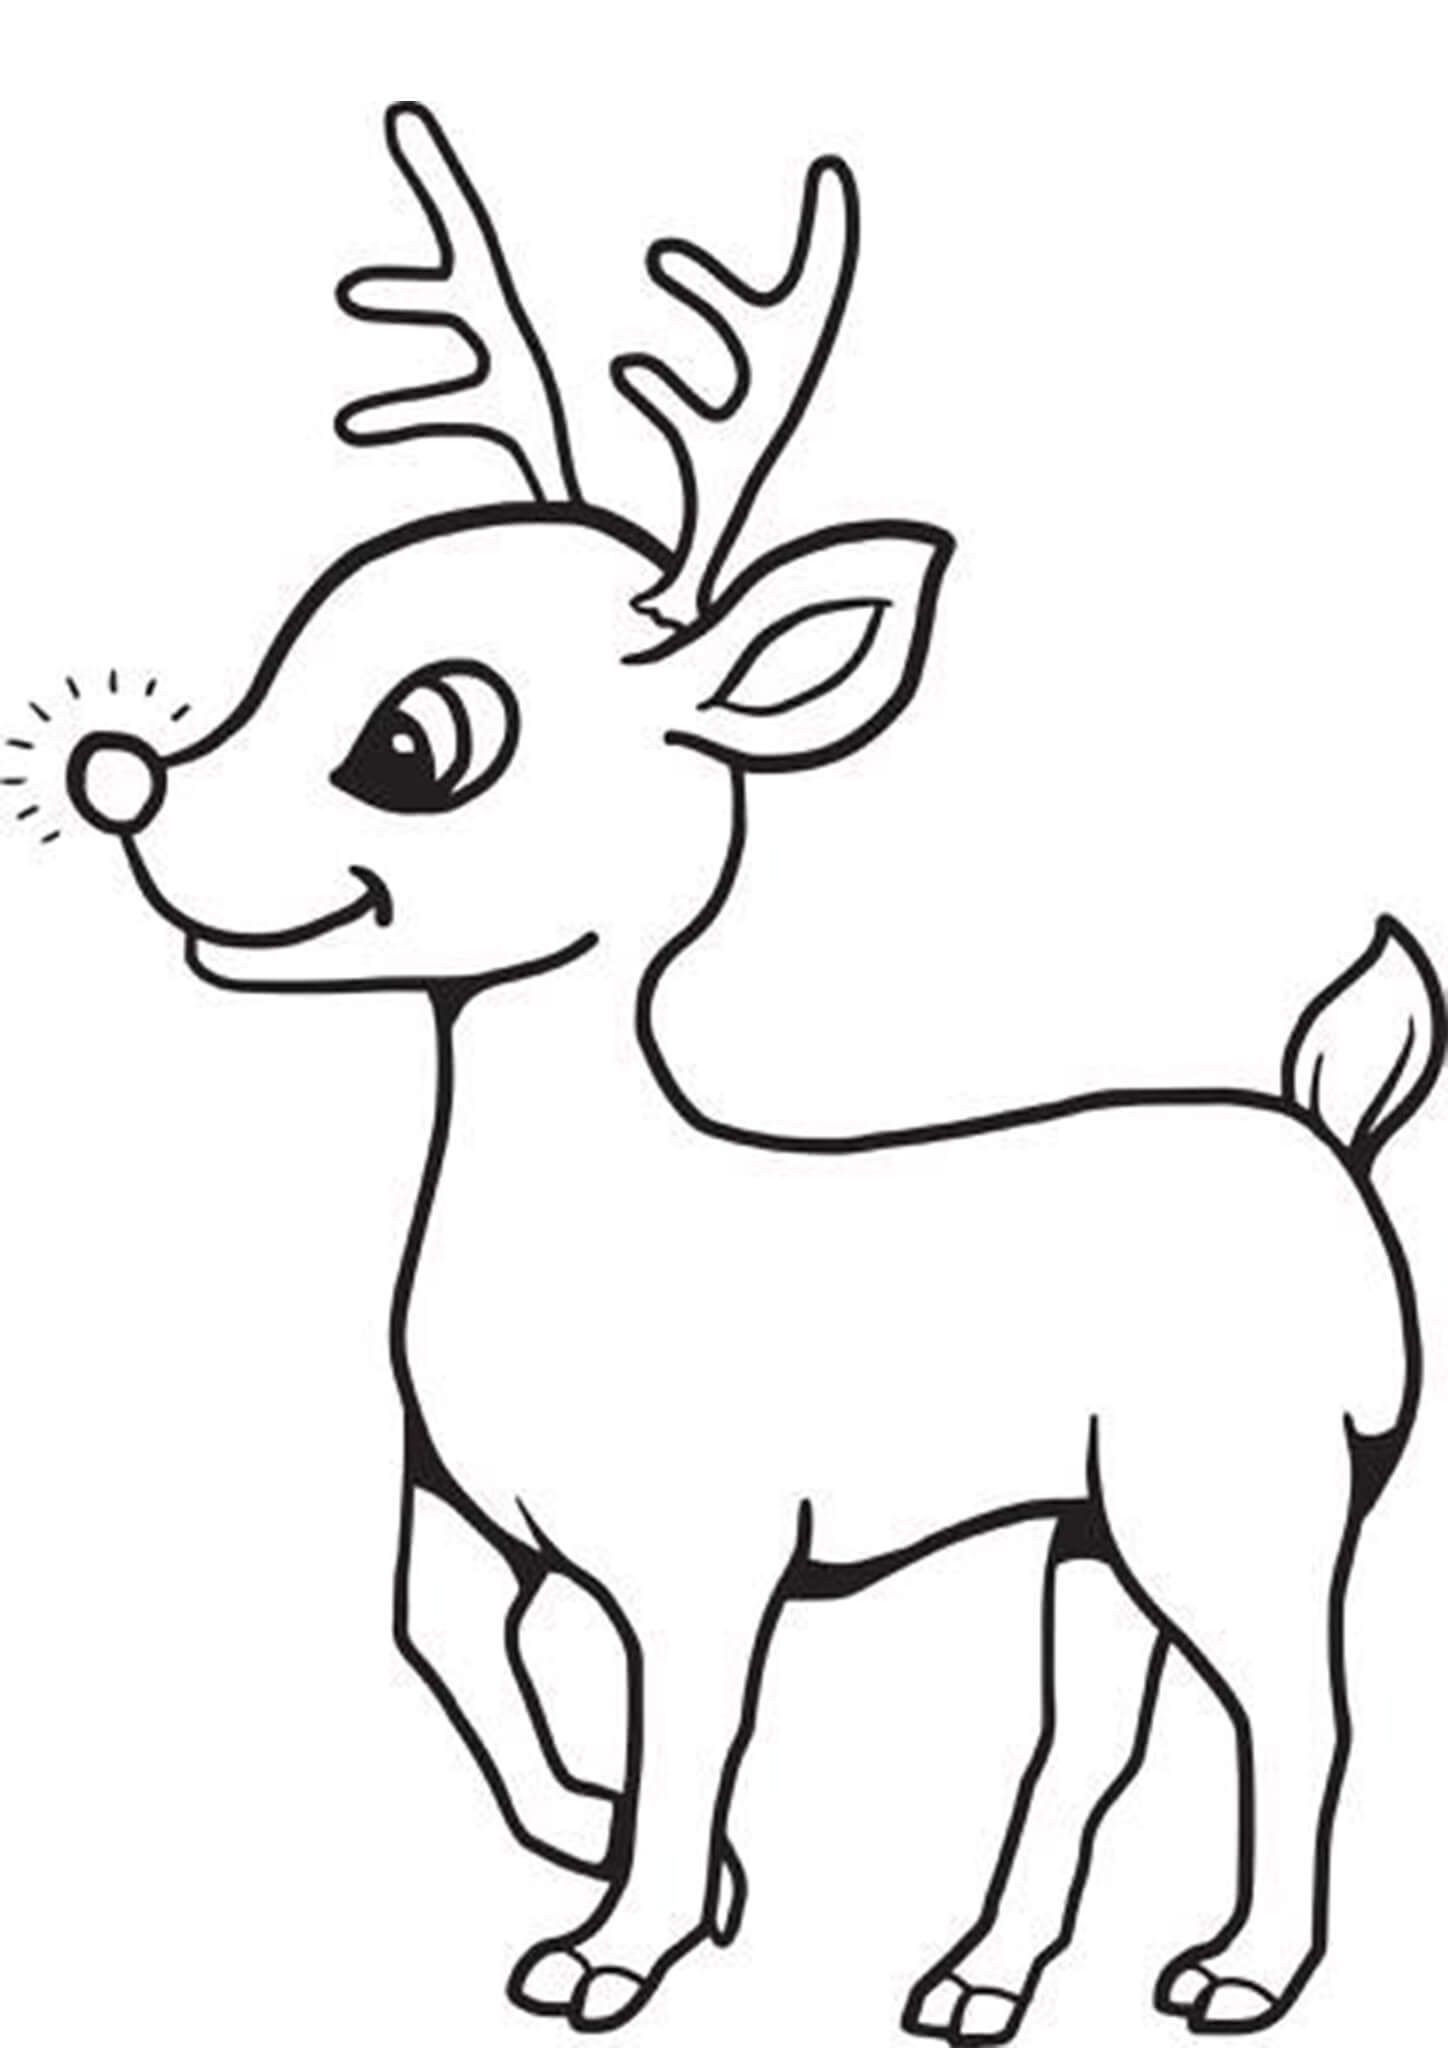 Rudolph The Red Nosed Reindeer Coloring Pages In 2020 Red Nosed Reindeer Rudolph The Red Valentines Day Coloring Page